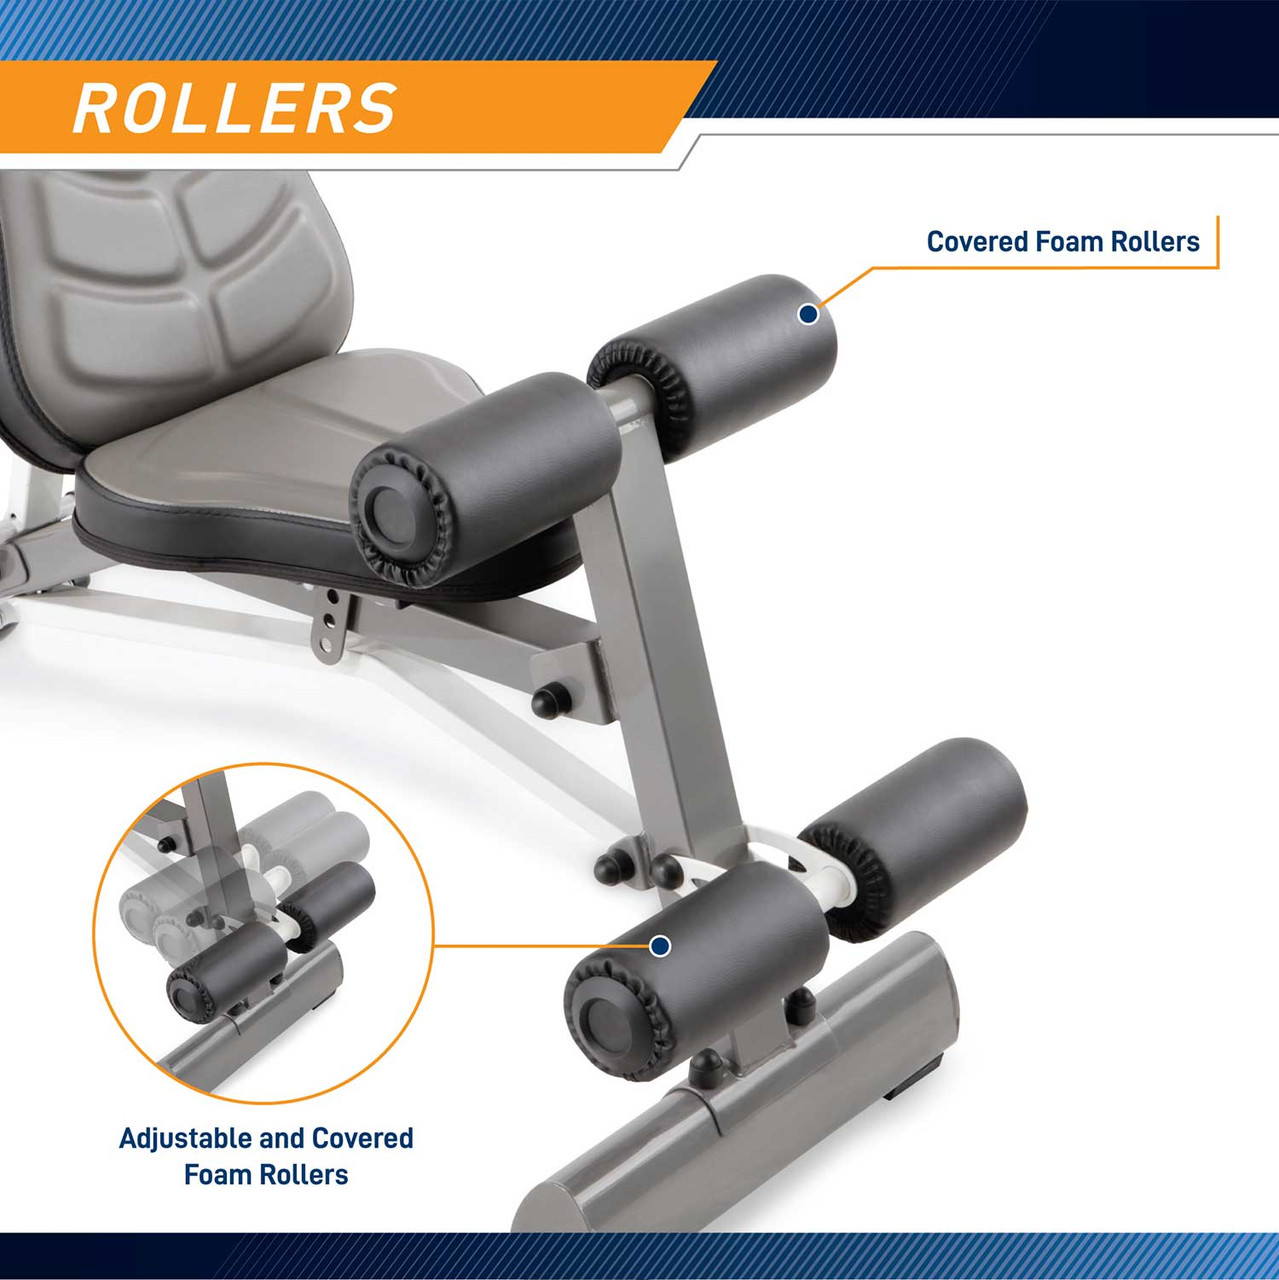 The Marcy Deluxe Utility Bench SB-10100 by Marcy includes roller pads to stabilize your intense workout